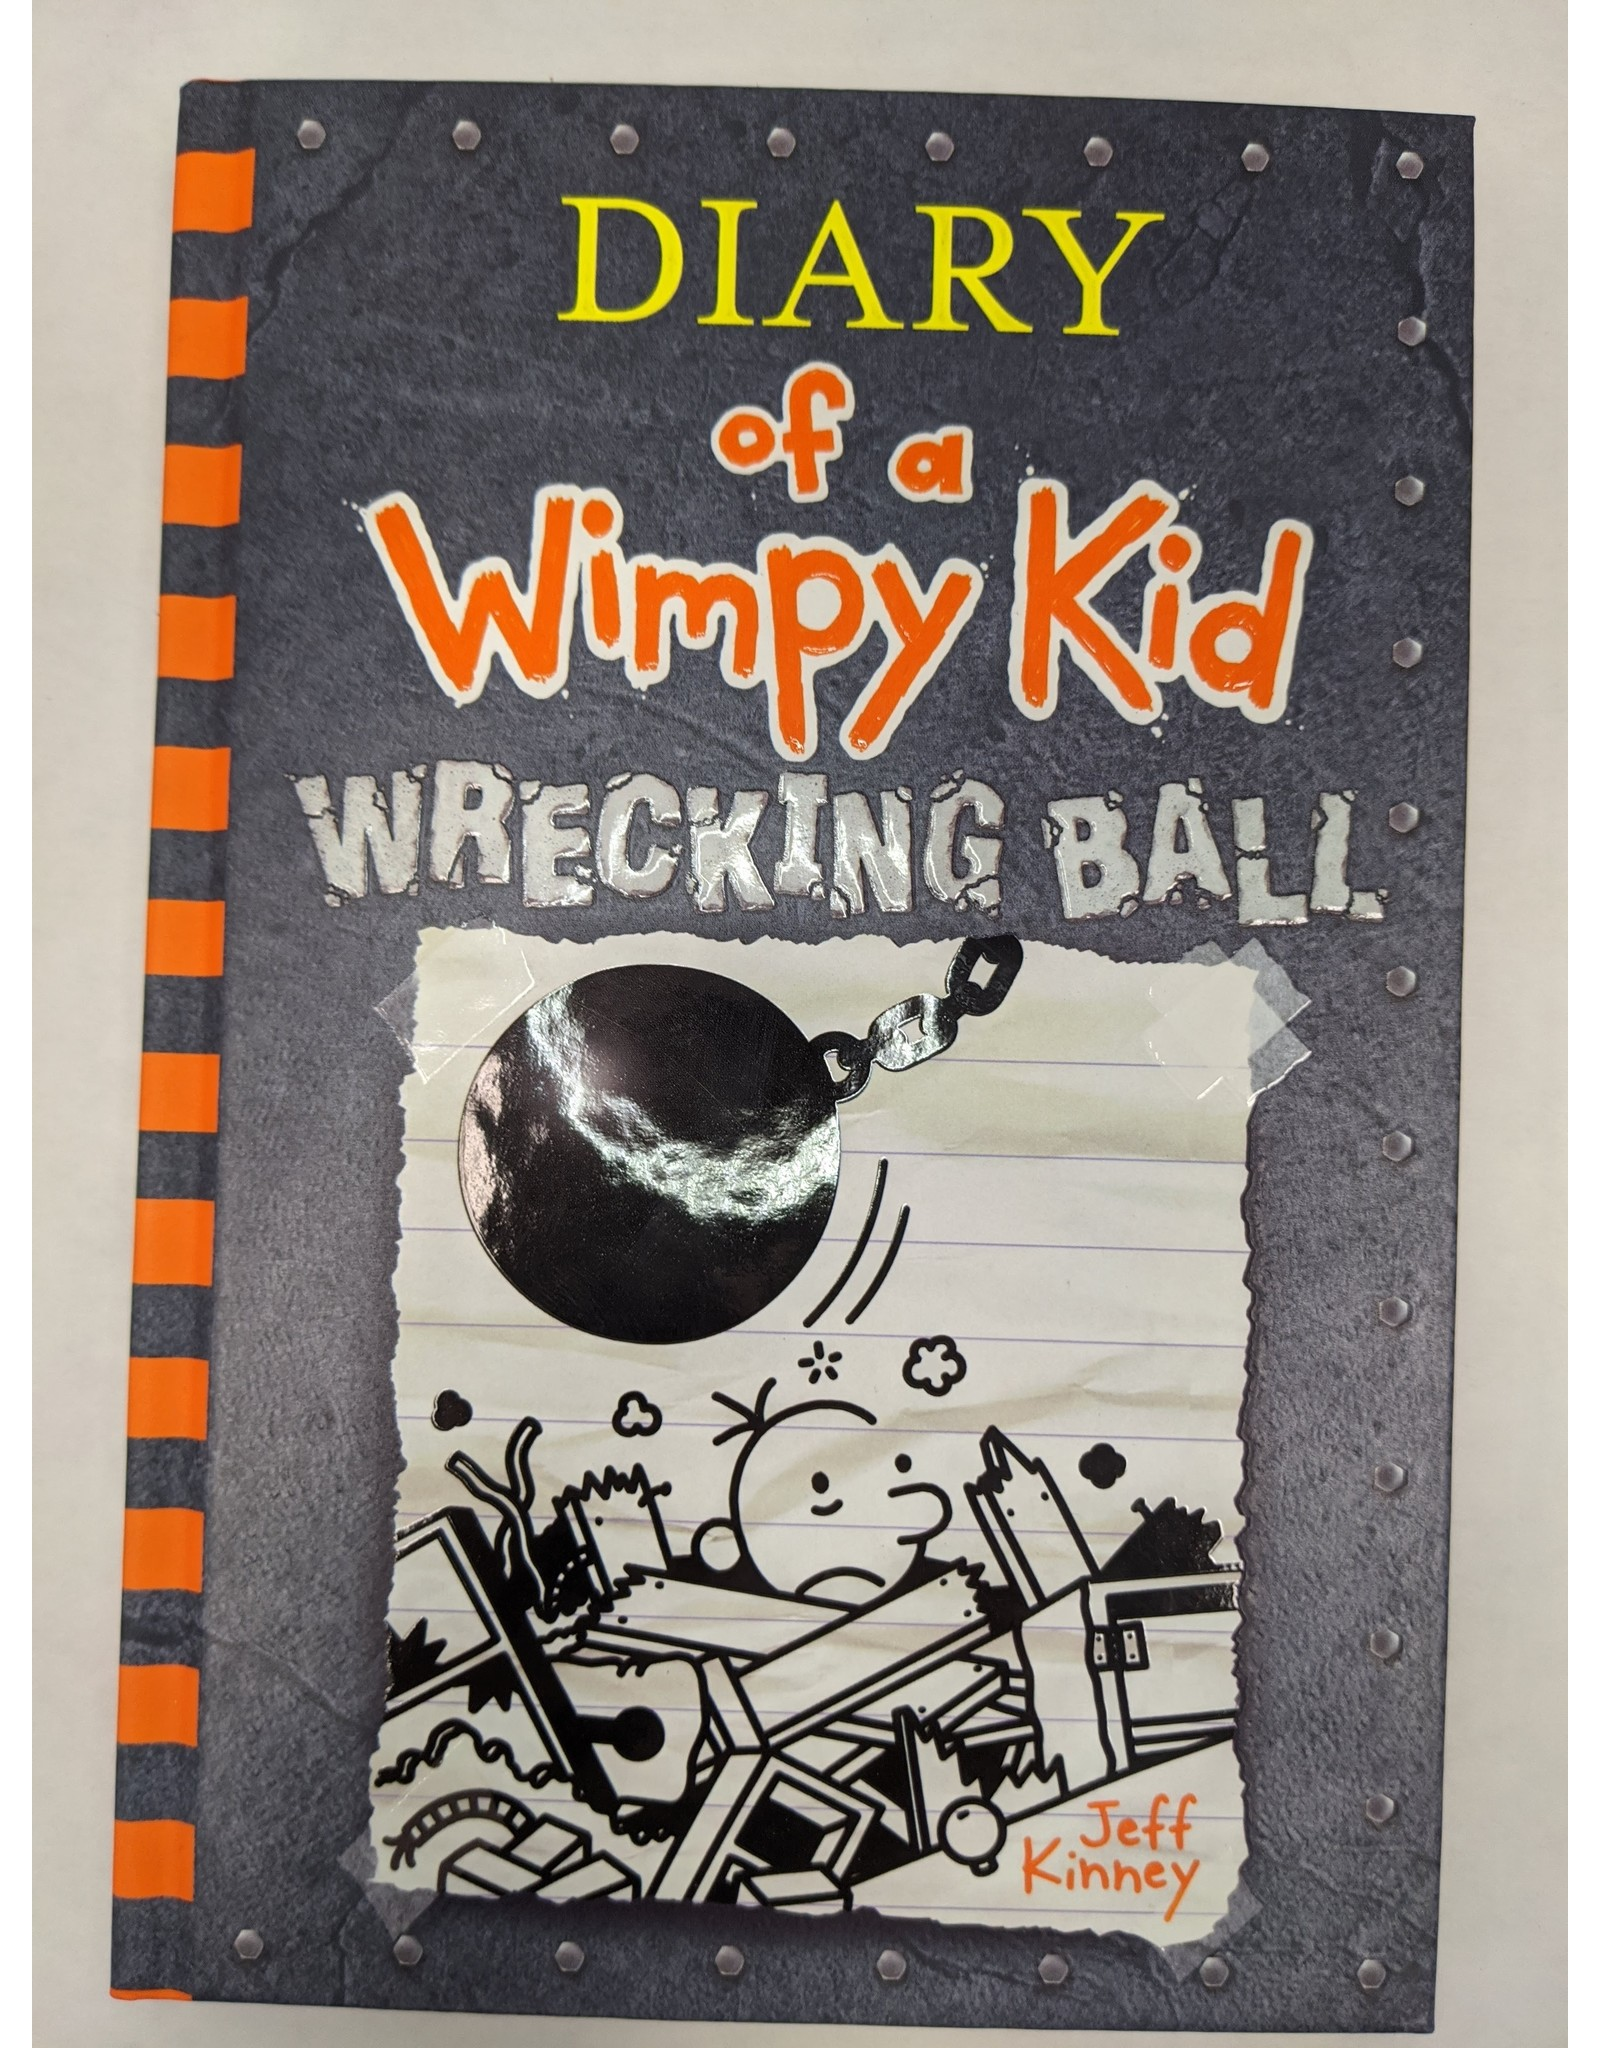 AMULET BOOKS DIARY OF A WIMPY KID HC VOL 14 WRECKING BALL